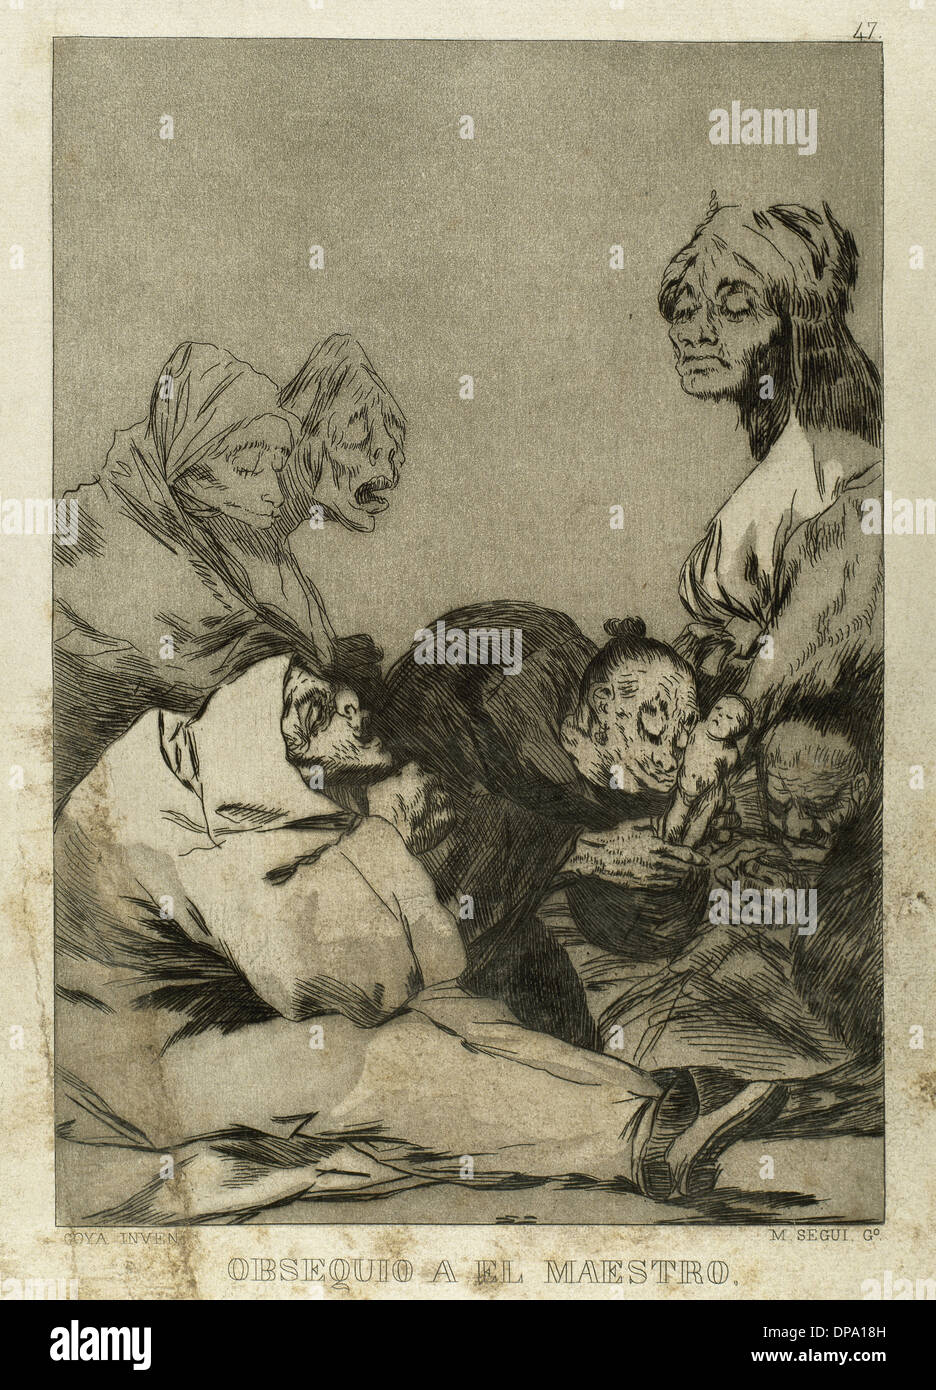 Goya (1746-1828). Spanish painter and printmaker. Los Caprichos. Obsequio al maestro (Teacher's gift). Number 47. - Stock Image